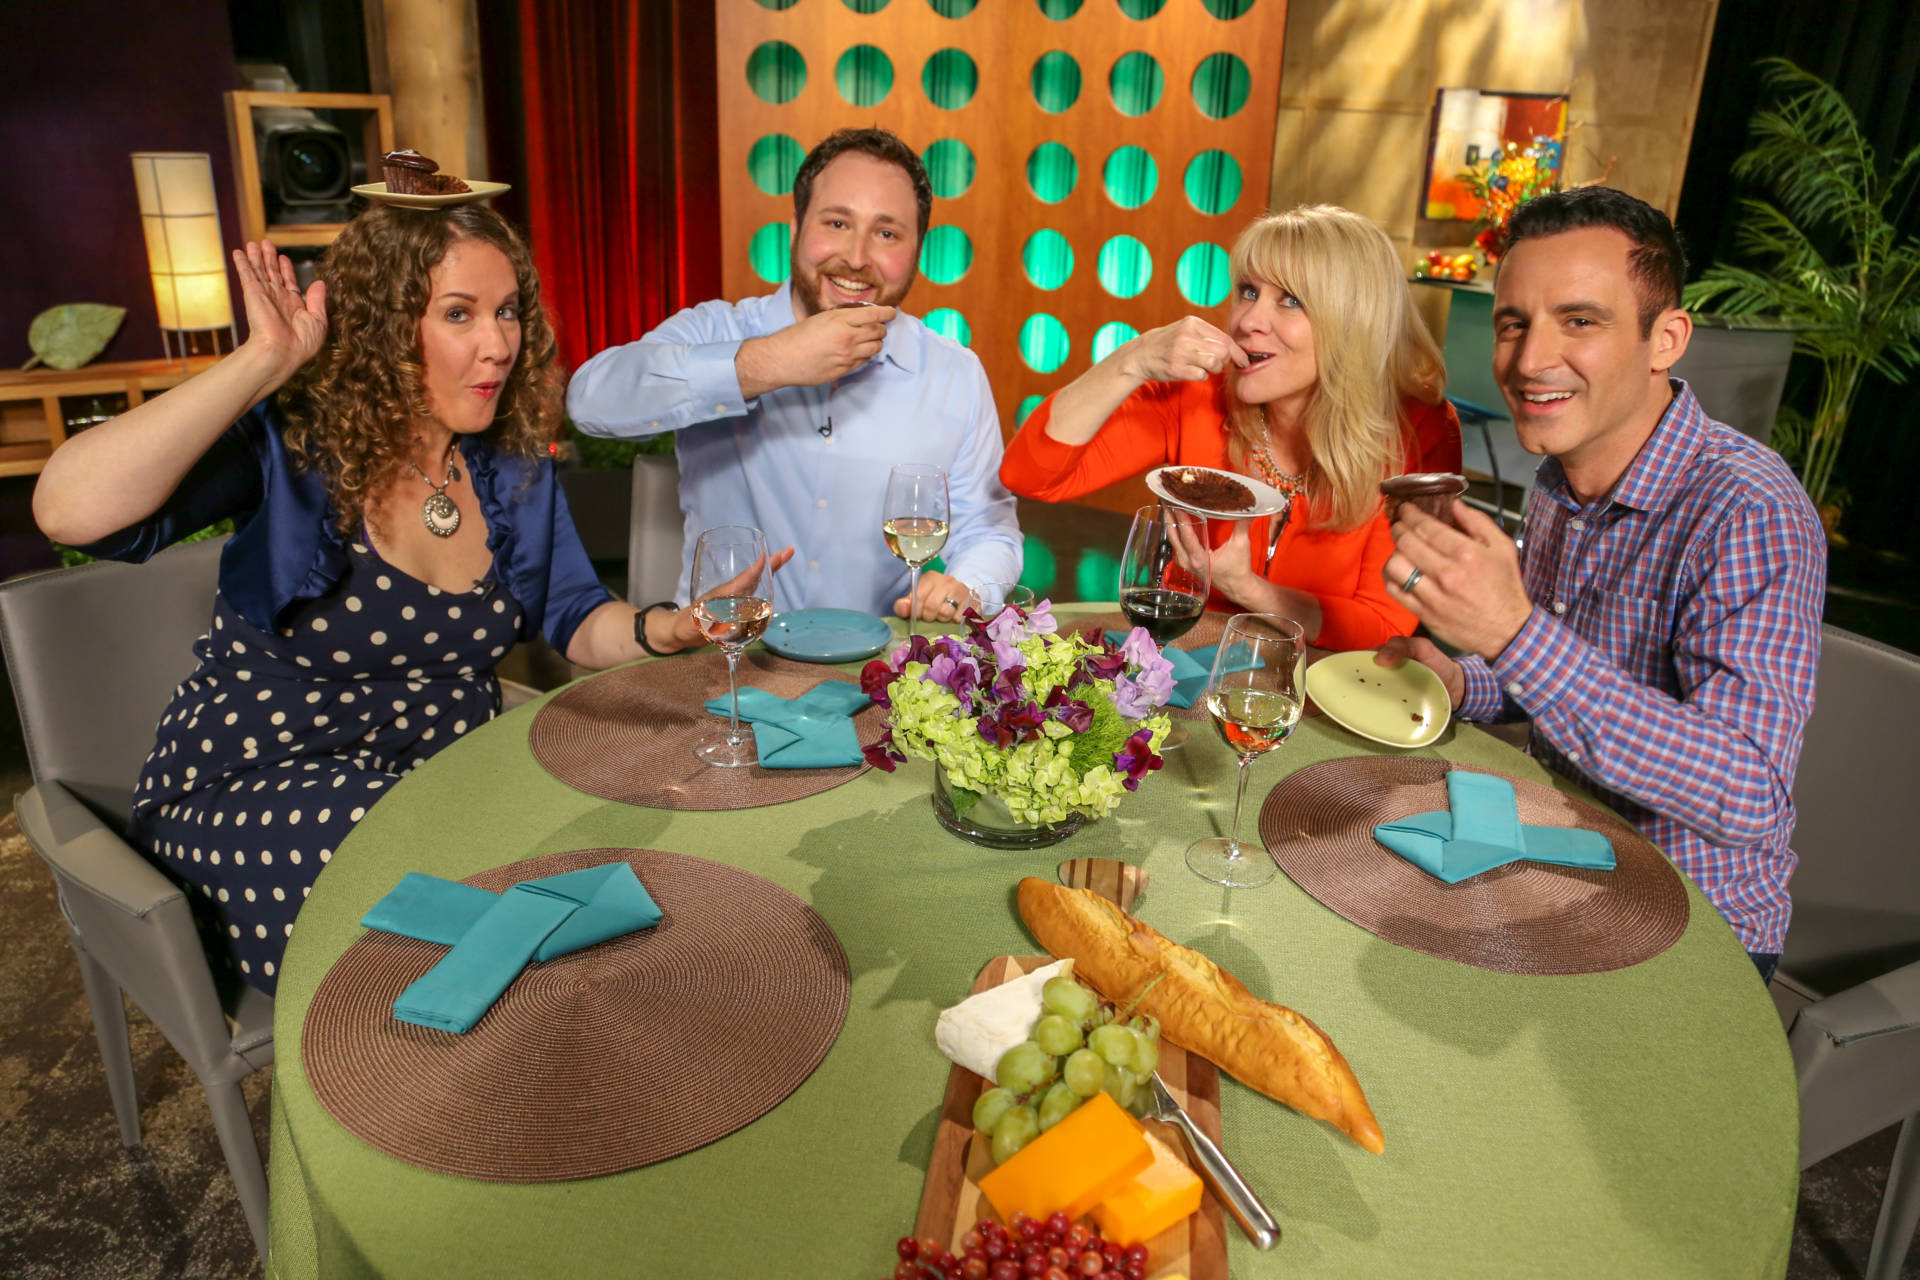 Host Leslie Sbrocco and guests on the set of season 13 episode 10.